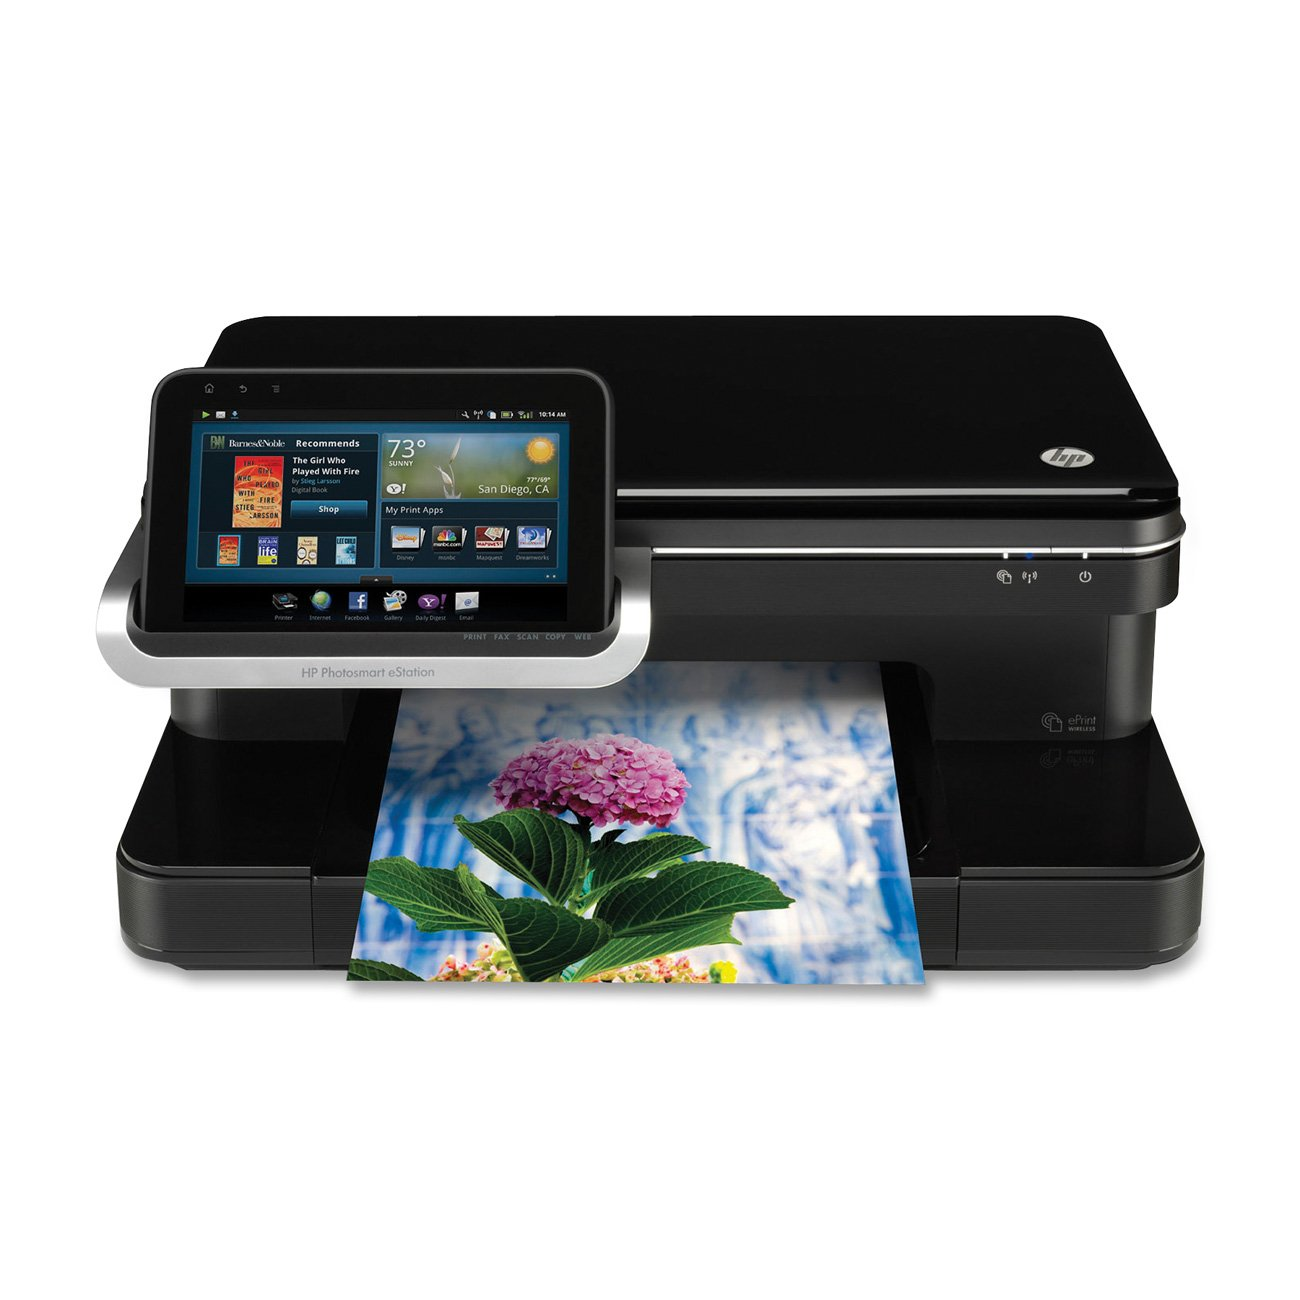 HP Photosmart eStation All-in-One (CQ140AB1H) by HP